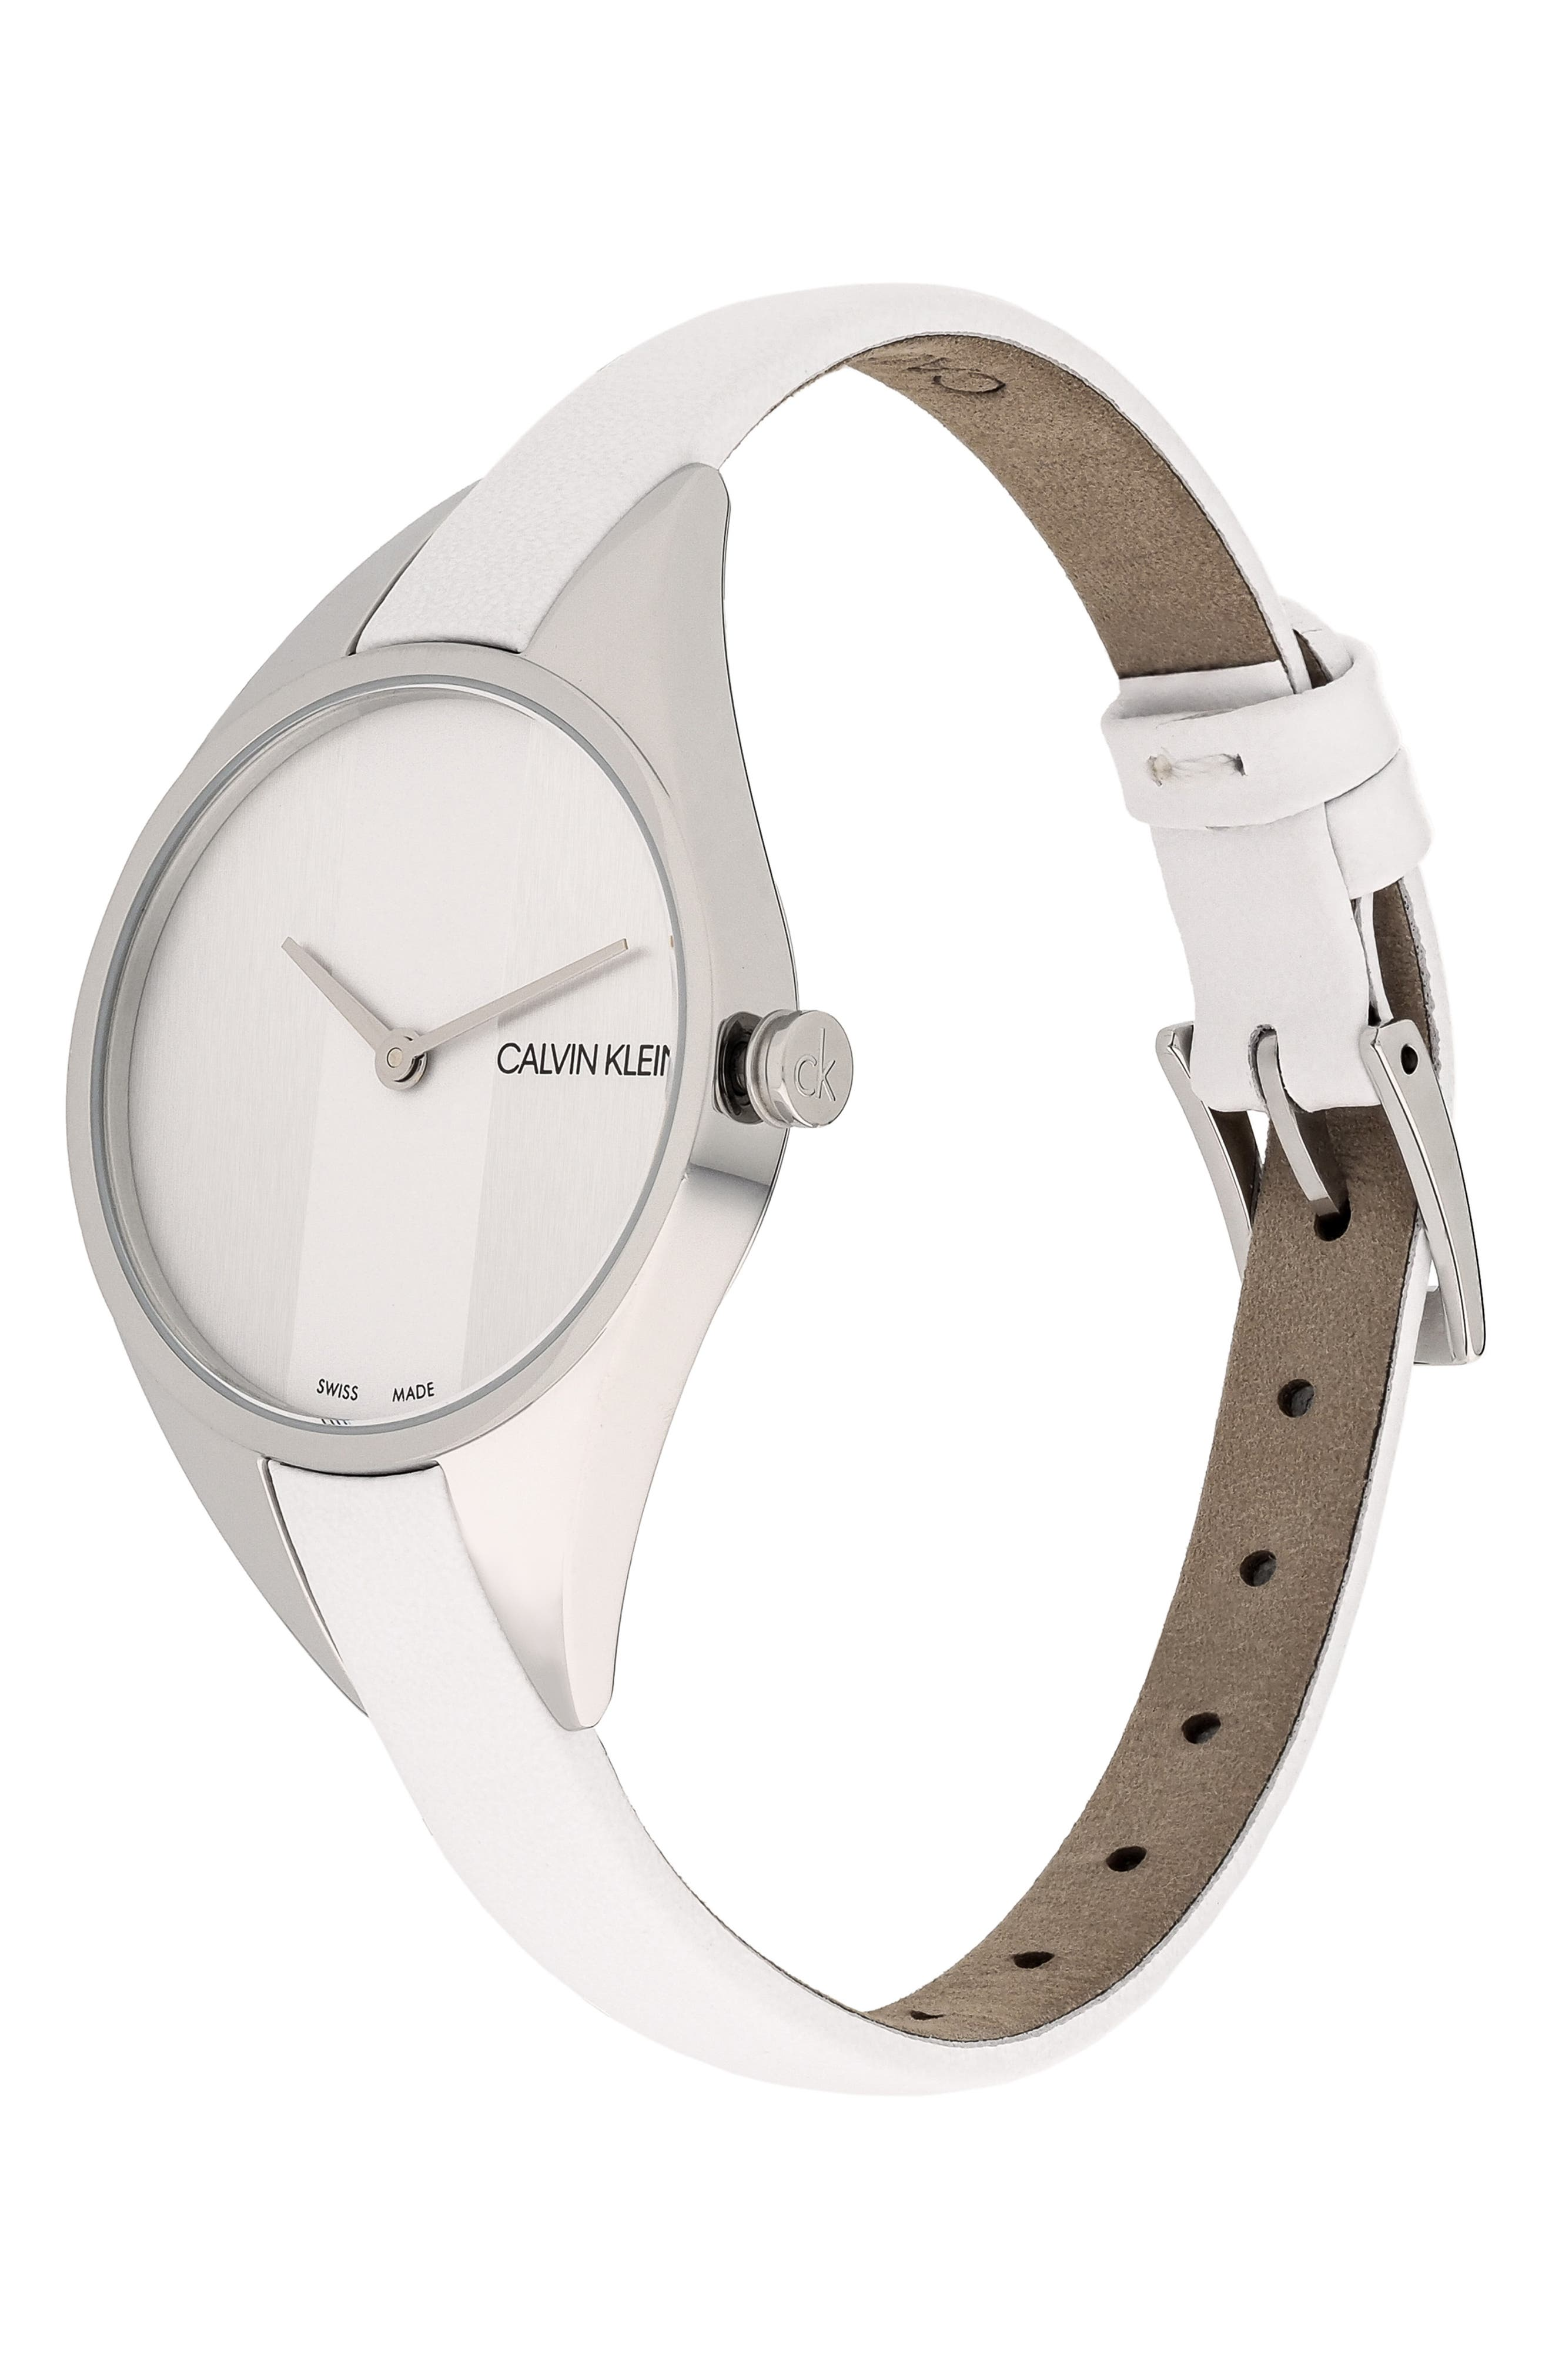 CALVIN KLEIN, Achieve Rebel Leather Band Watch, 29mm, Alternate thumbnail 4, color, WHITE/ SILVER